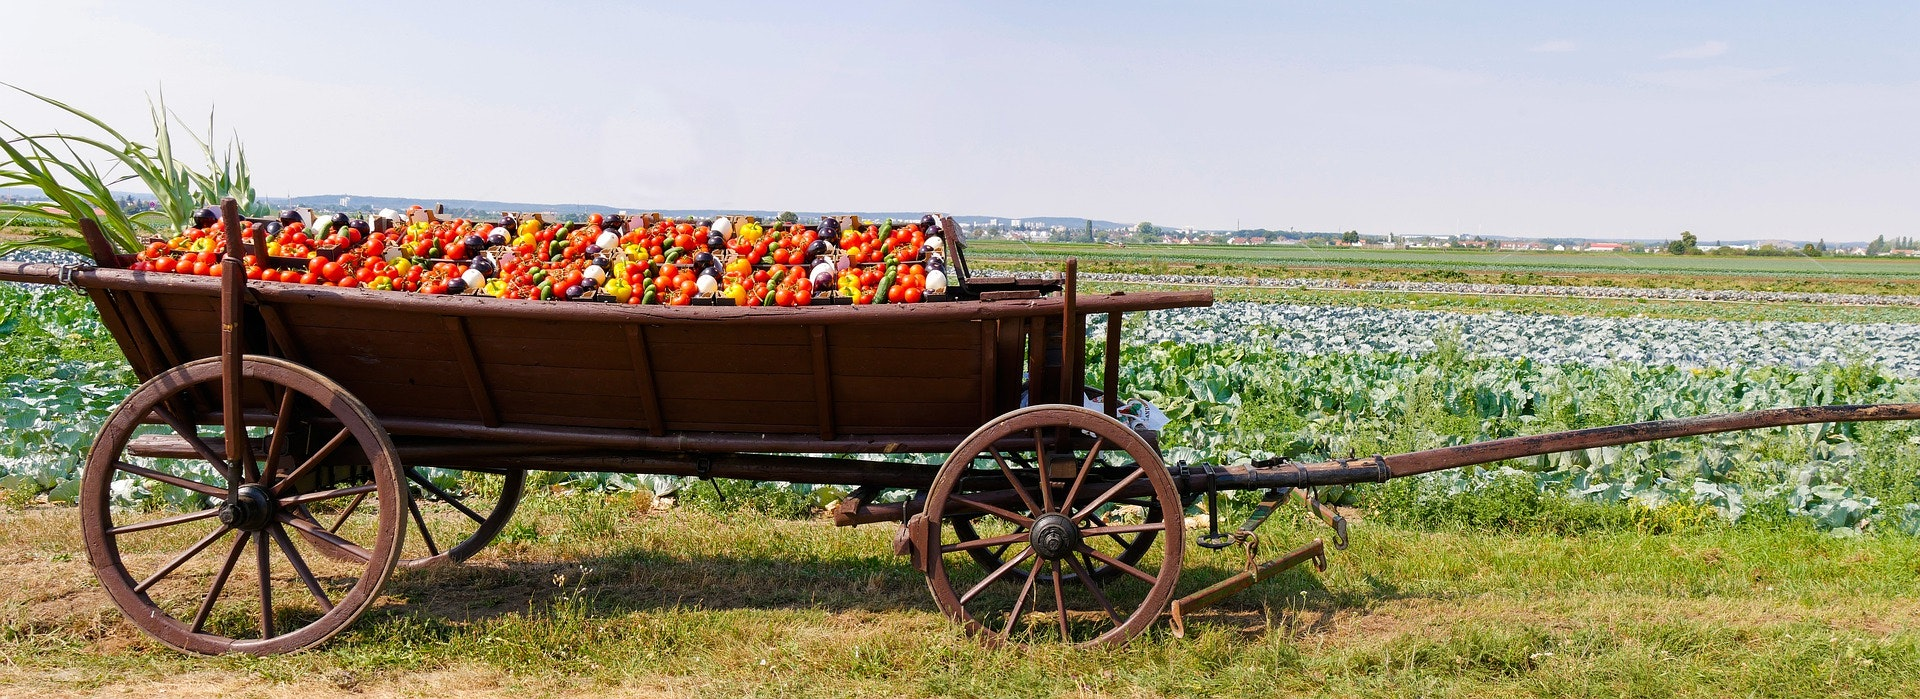 Image of wagon filled with fruits and vegetables.